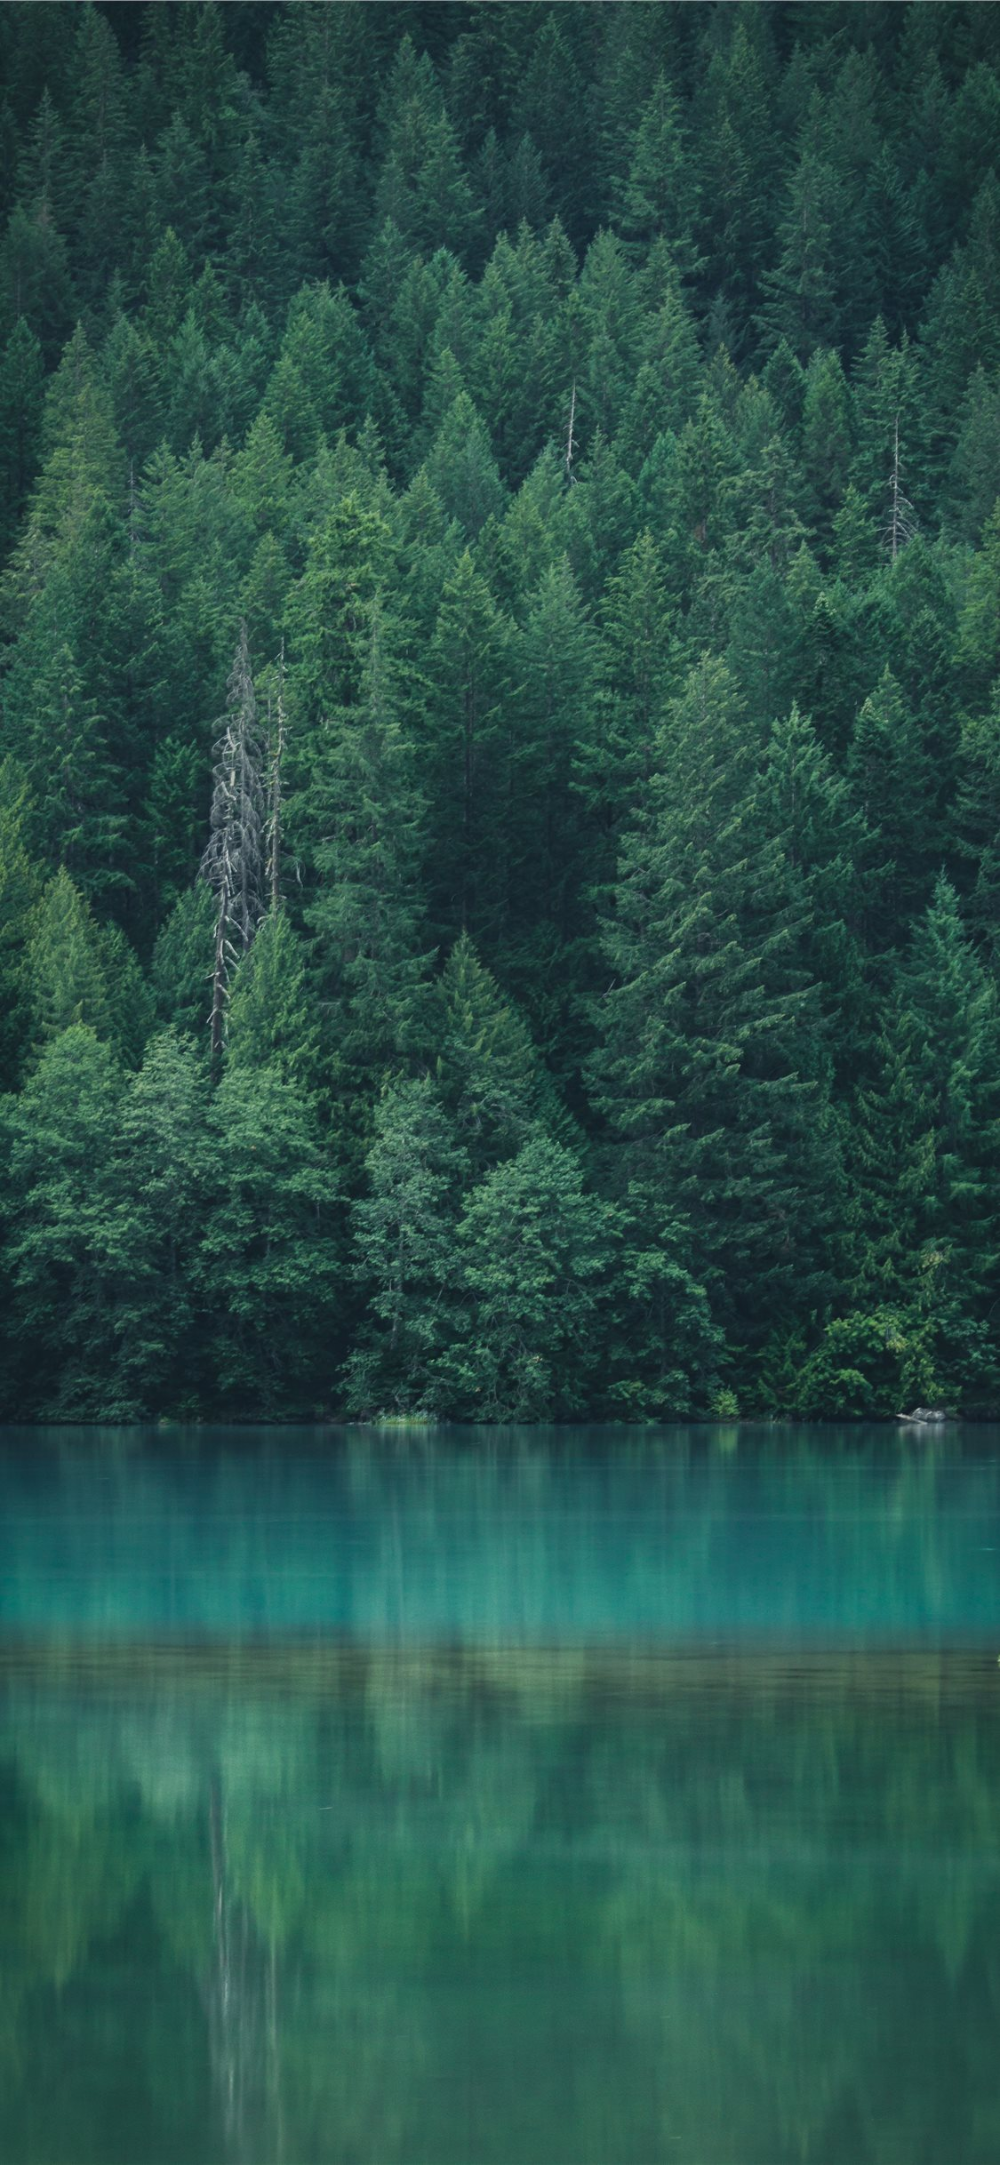 Forest Reflection At Diablo Lake Iphone 11 Wallpapers Free Download In 2020 Diablo Lake Forest Wallpaper Forest Wallpaper Iphone